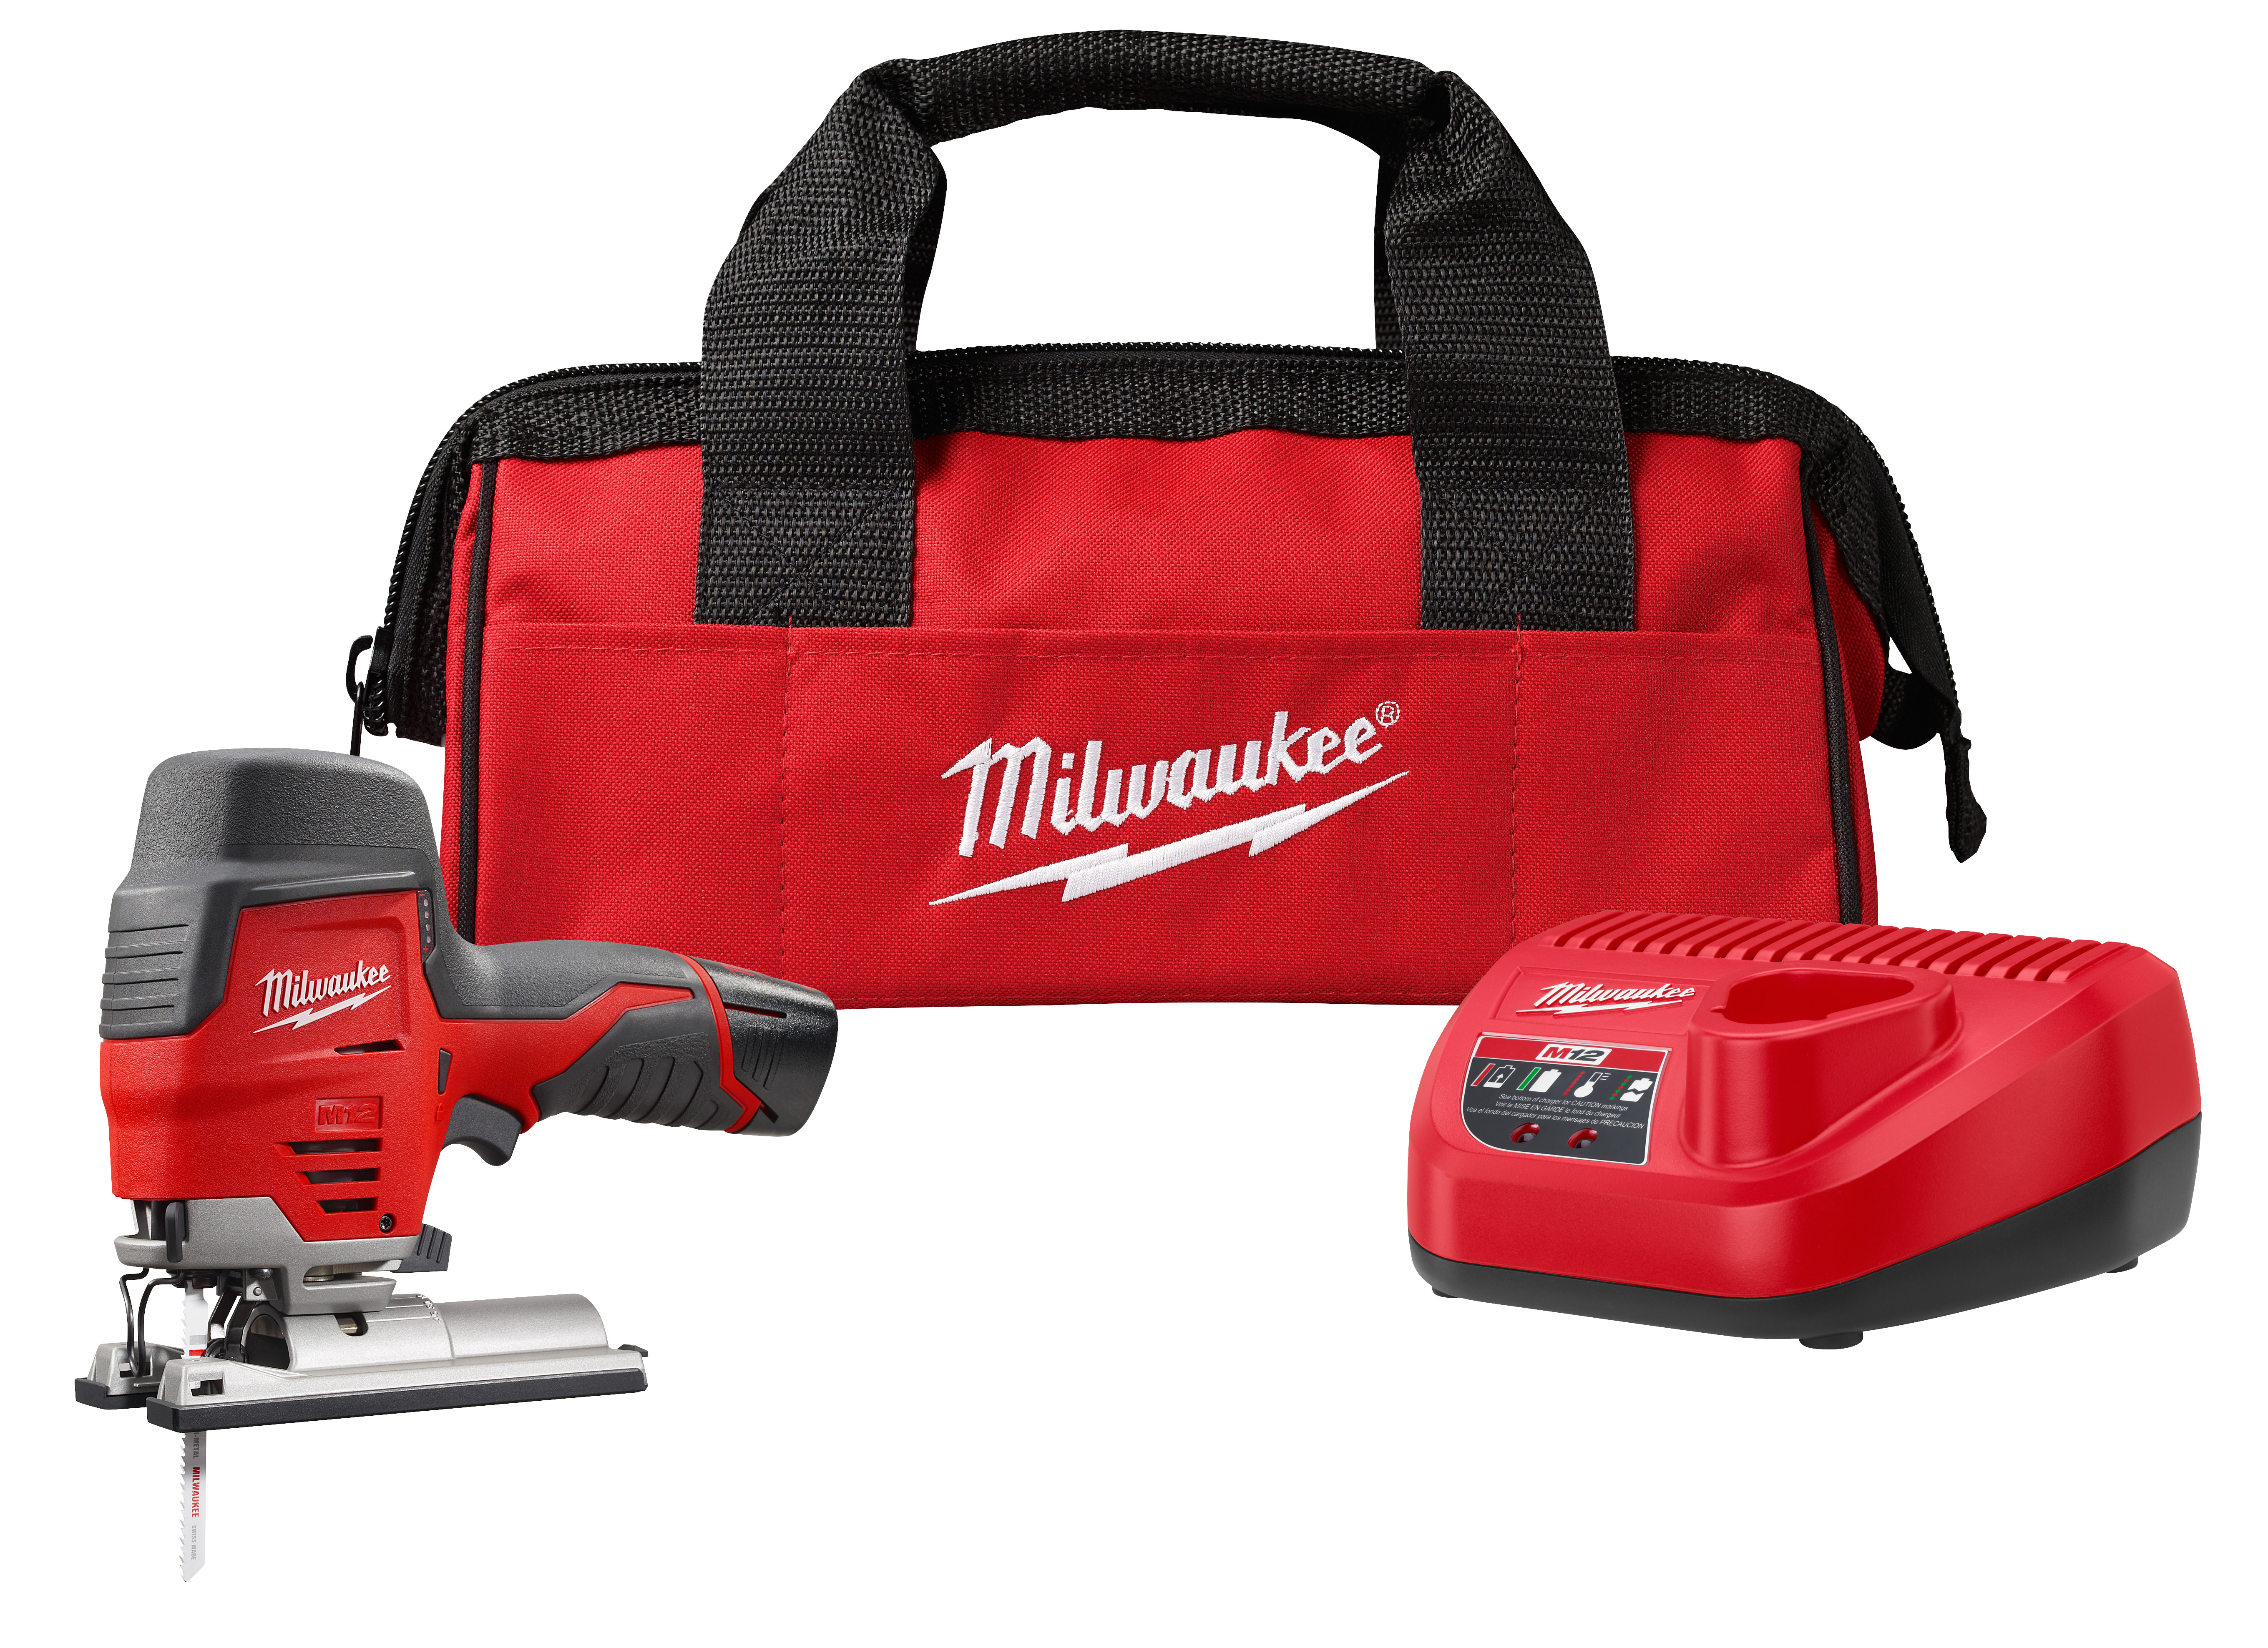 Milwaukee® M12™ 2445-21 Compact High Performance Lightweight Cordless Jig Saw Kit, 12 VDC, For Blade Shank: T-Shank, 8 in OAL, Lithium-Ion Battery